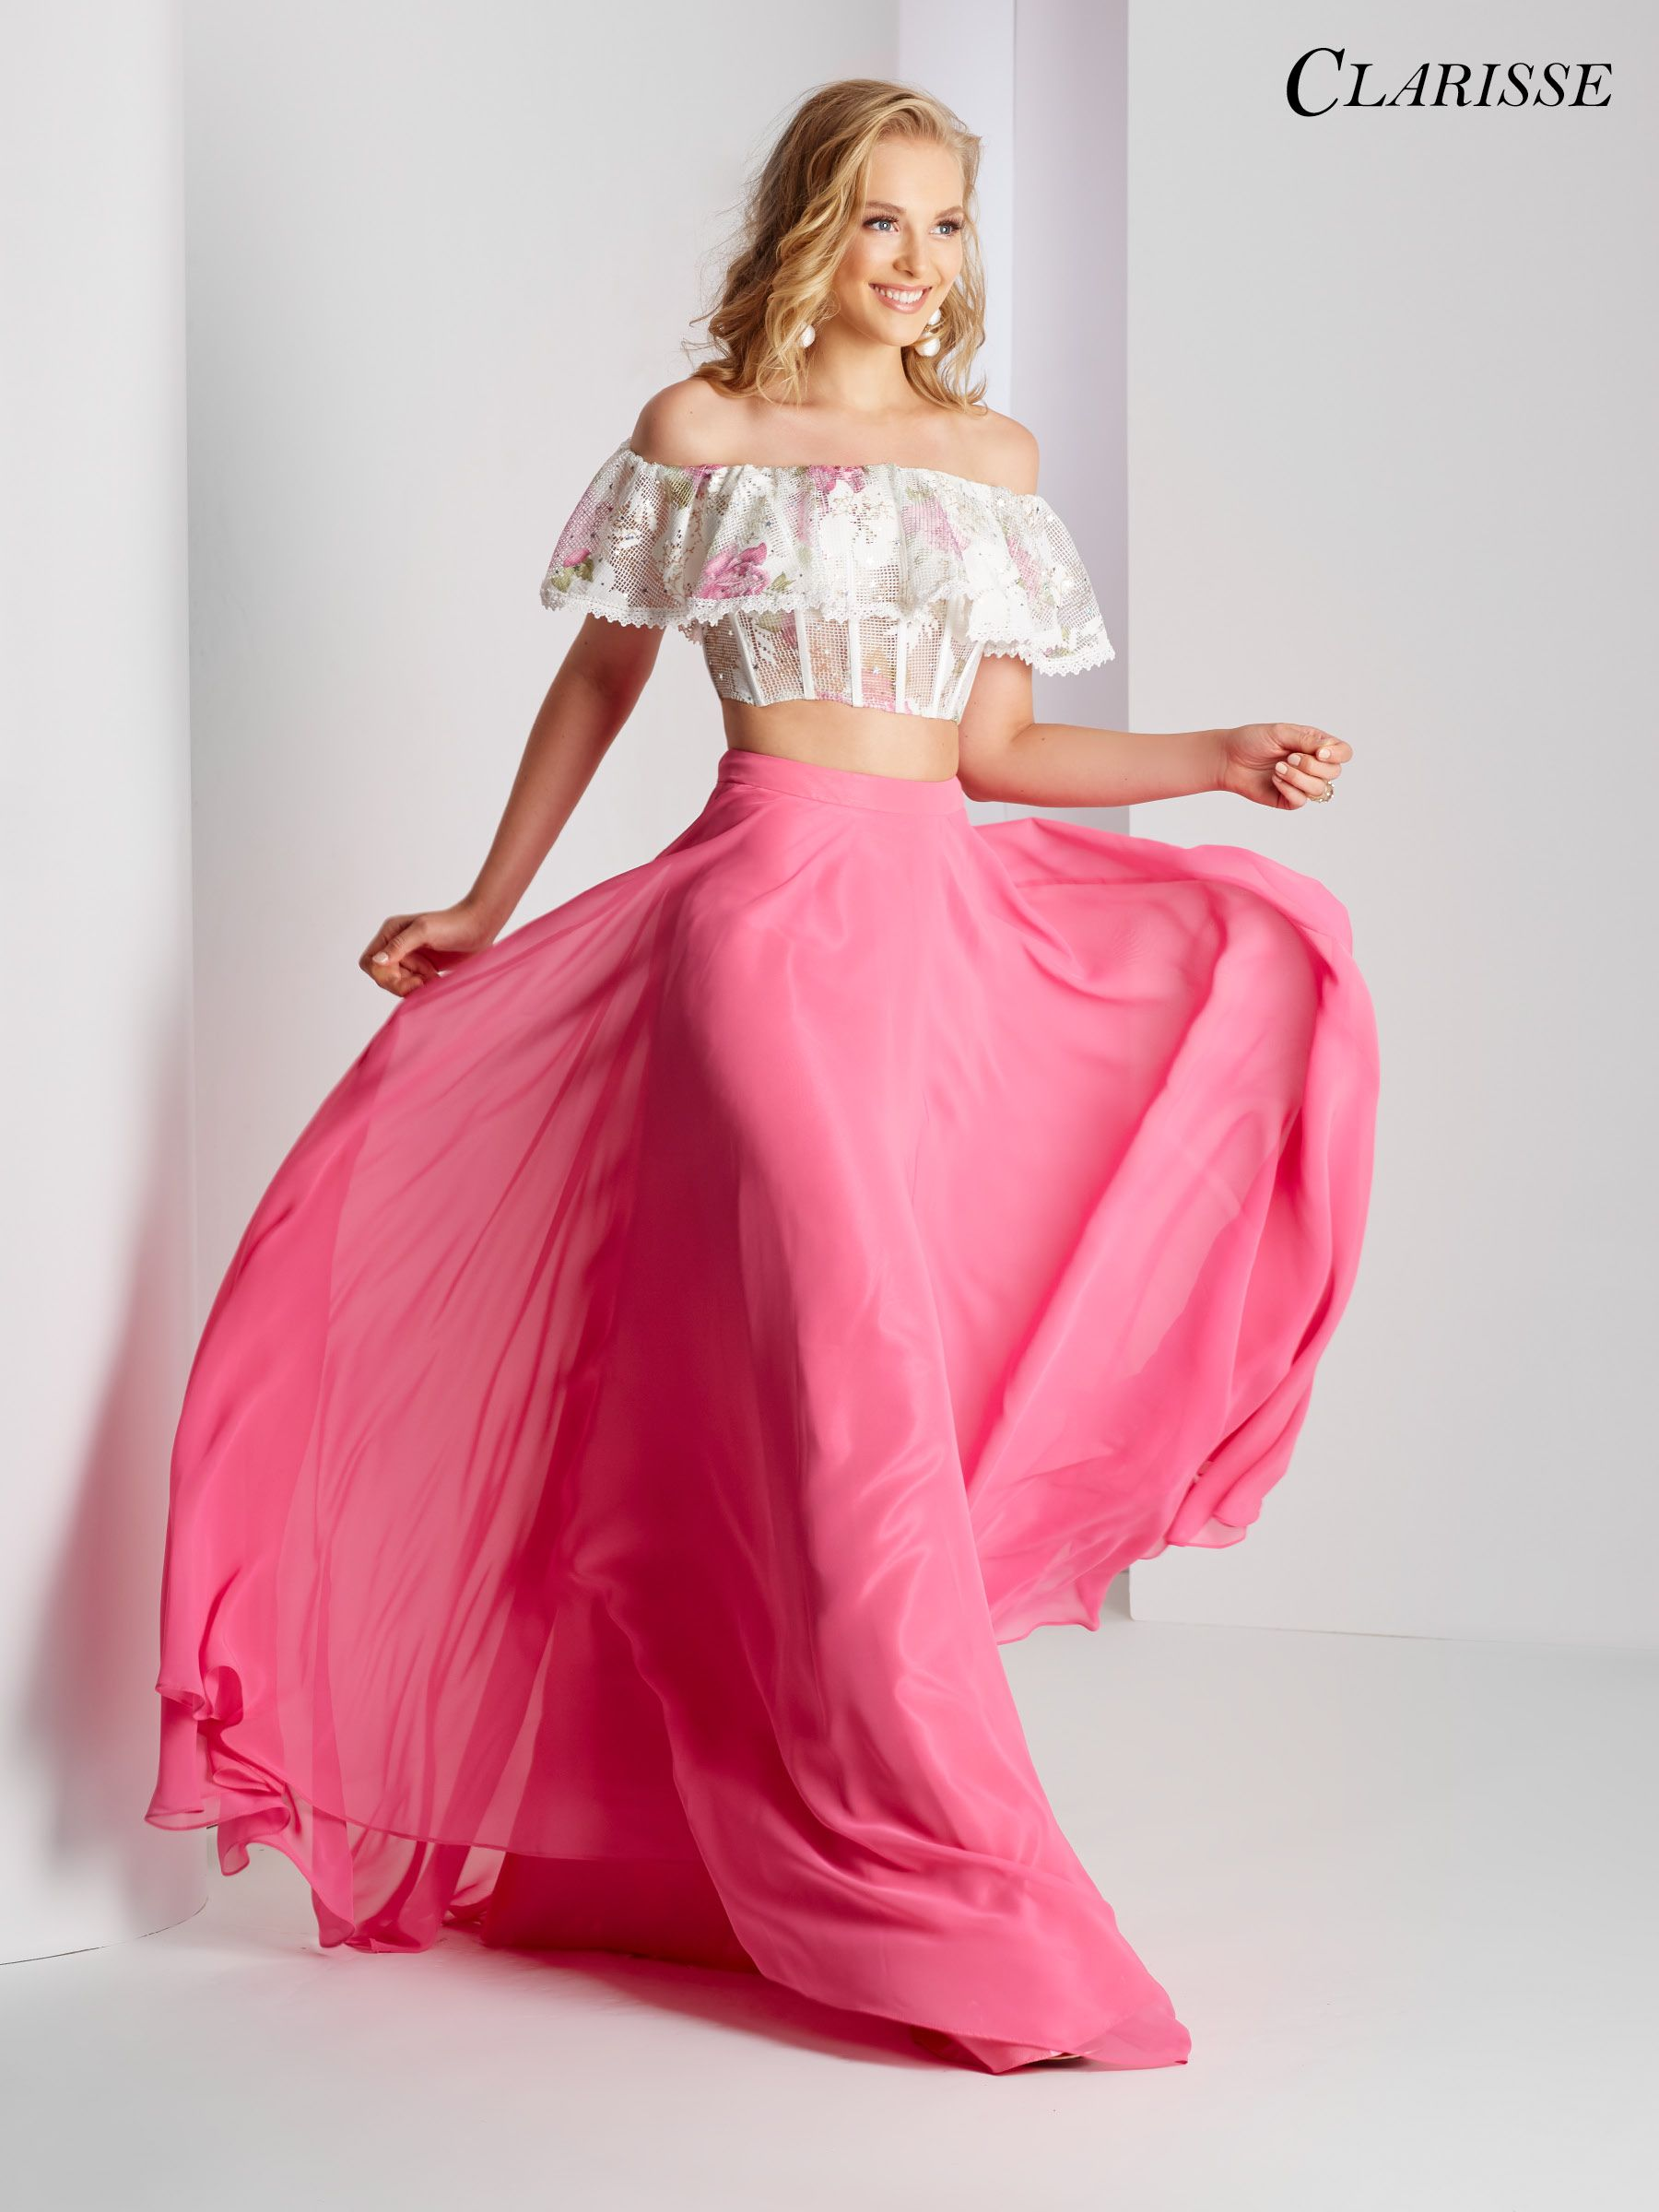 Clarisse Prom 2018 dress 3531. Two piece prom dress with off the ...